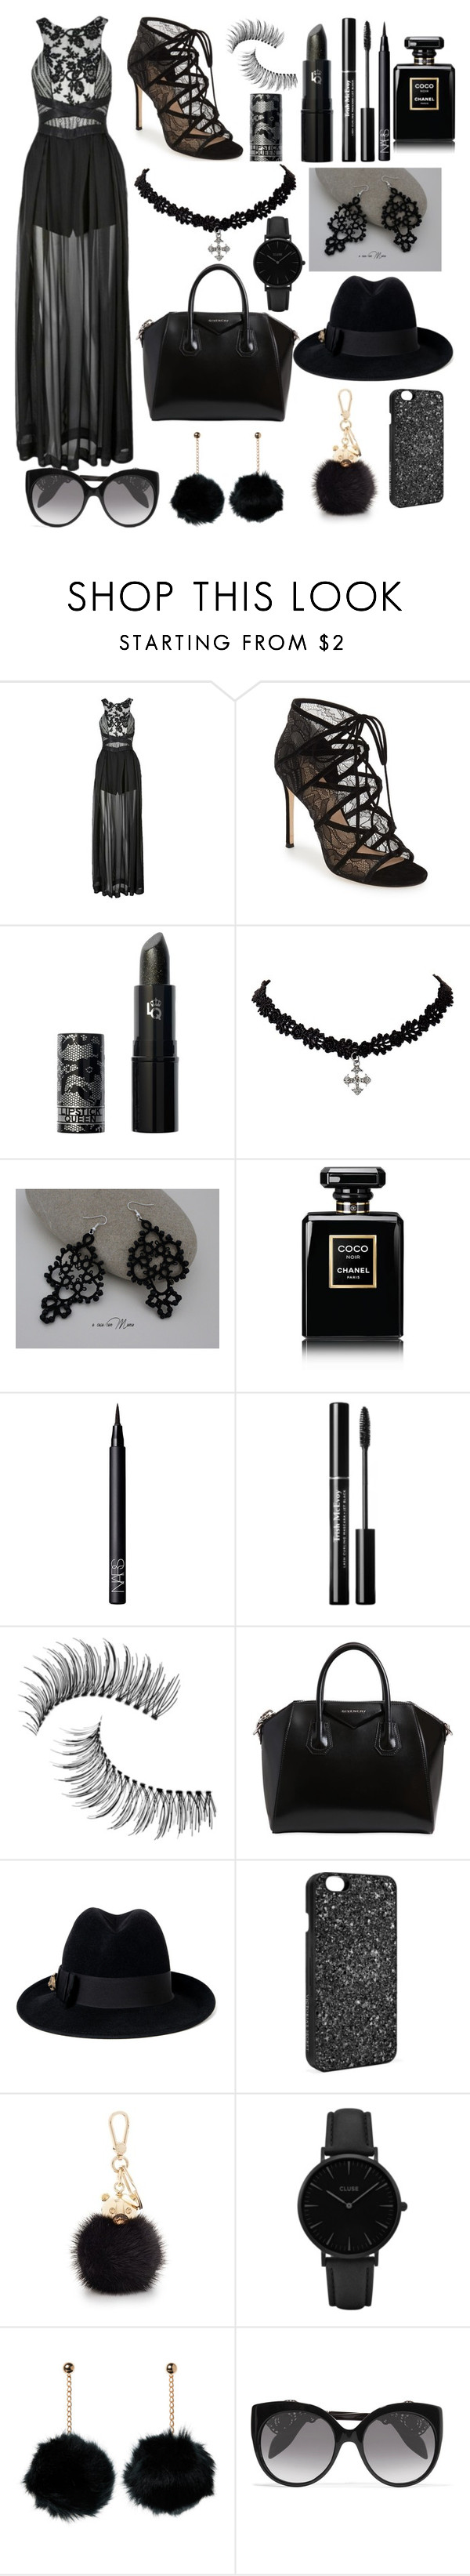 """Luscious Lace"" by juicypiggy ❤ liked on Polyvore featuring Three Floor, Pour La Victoire, Lipstick Queen, Chanel, NARS Cosmetics, Trish McEvoy, Givenchy, Gucci, Victoria's Secret and Furla"